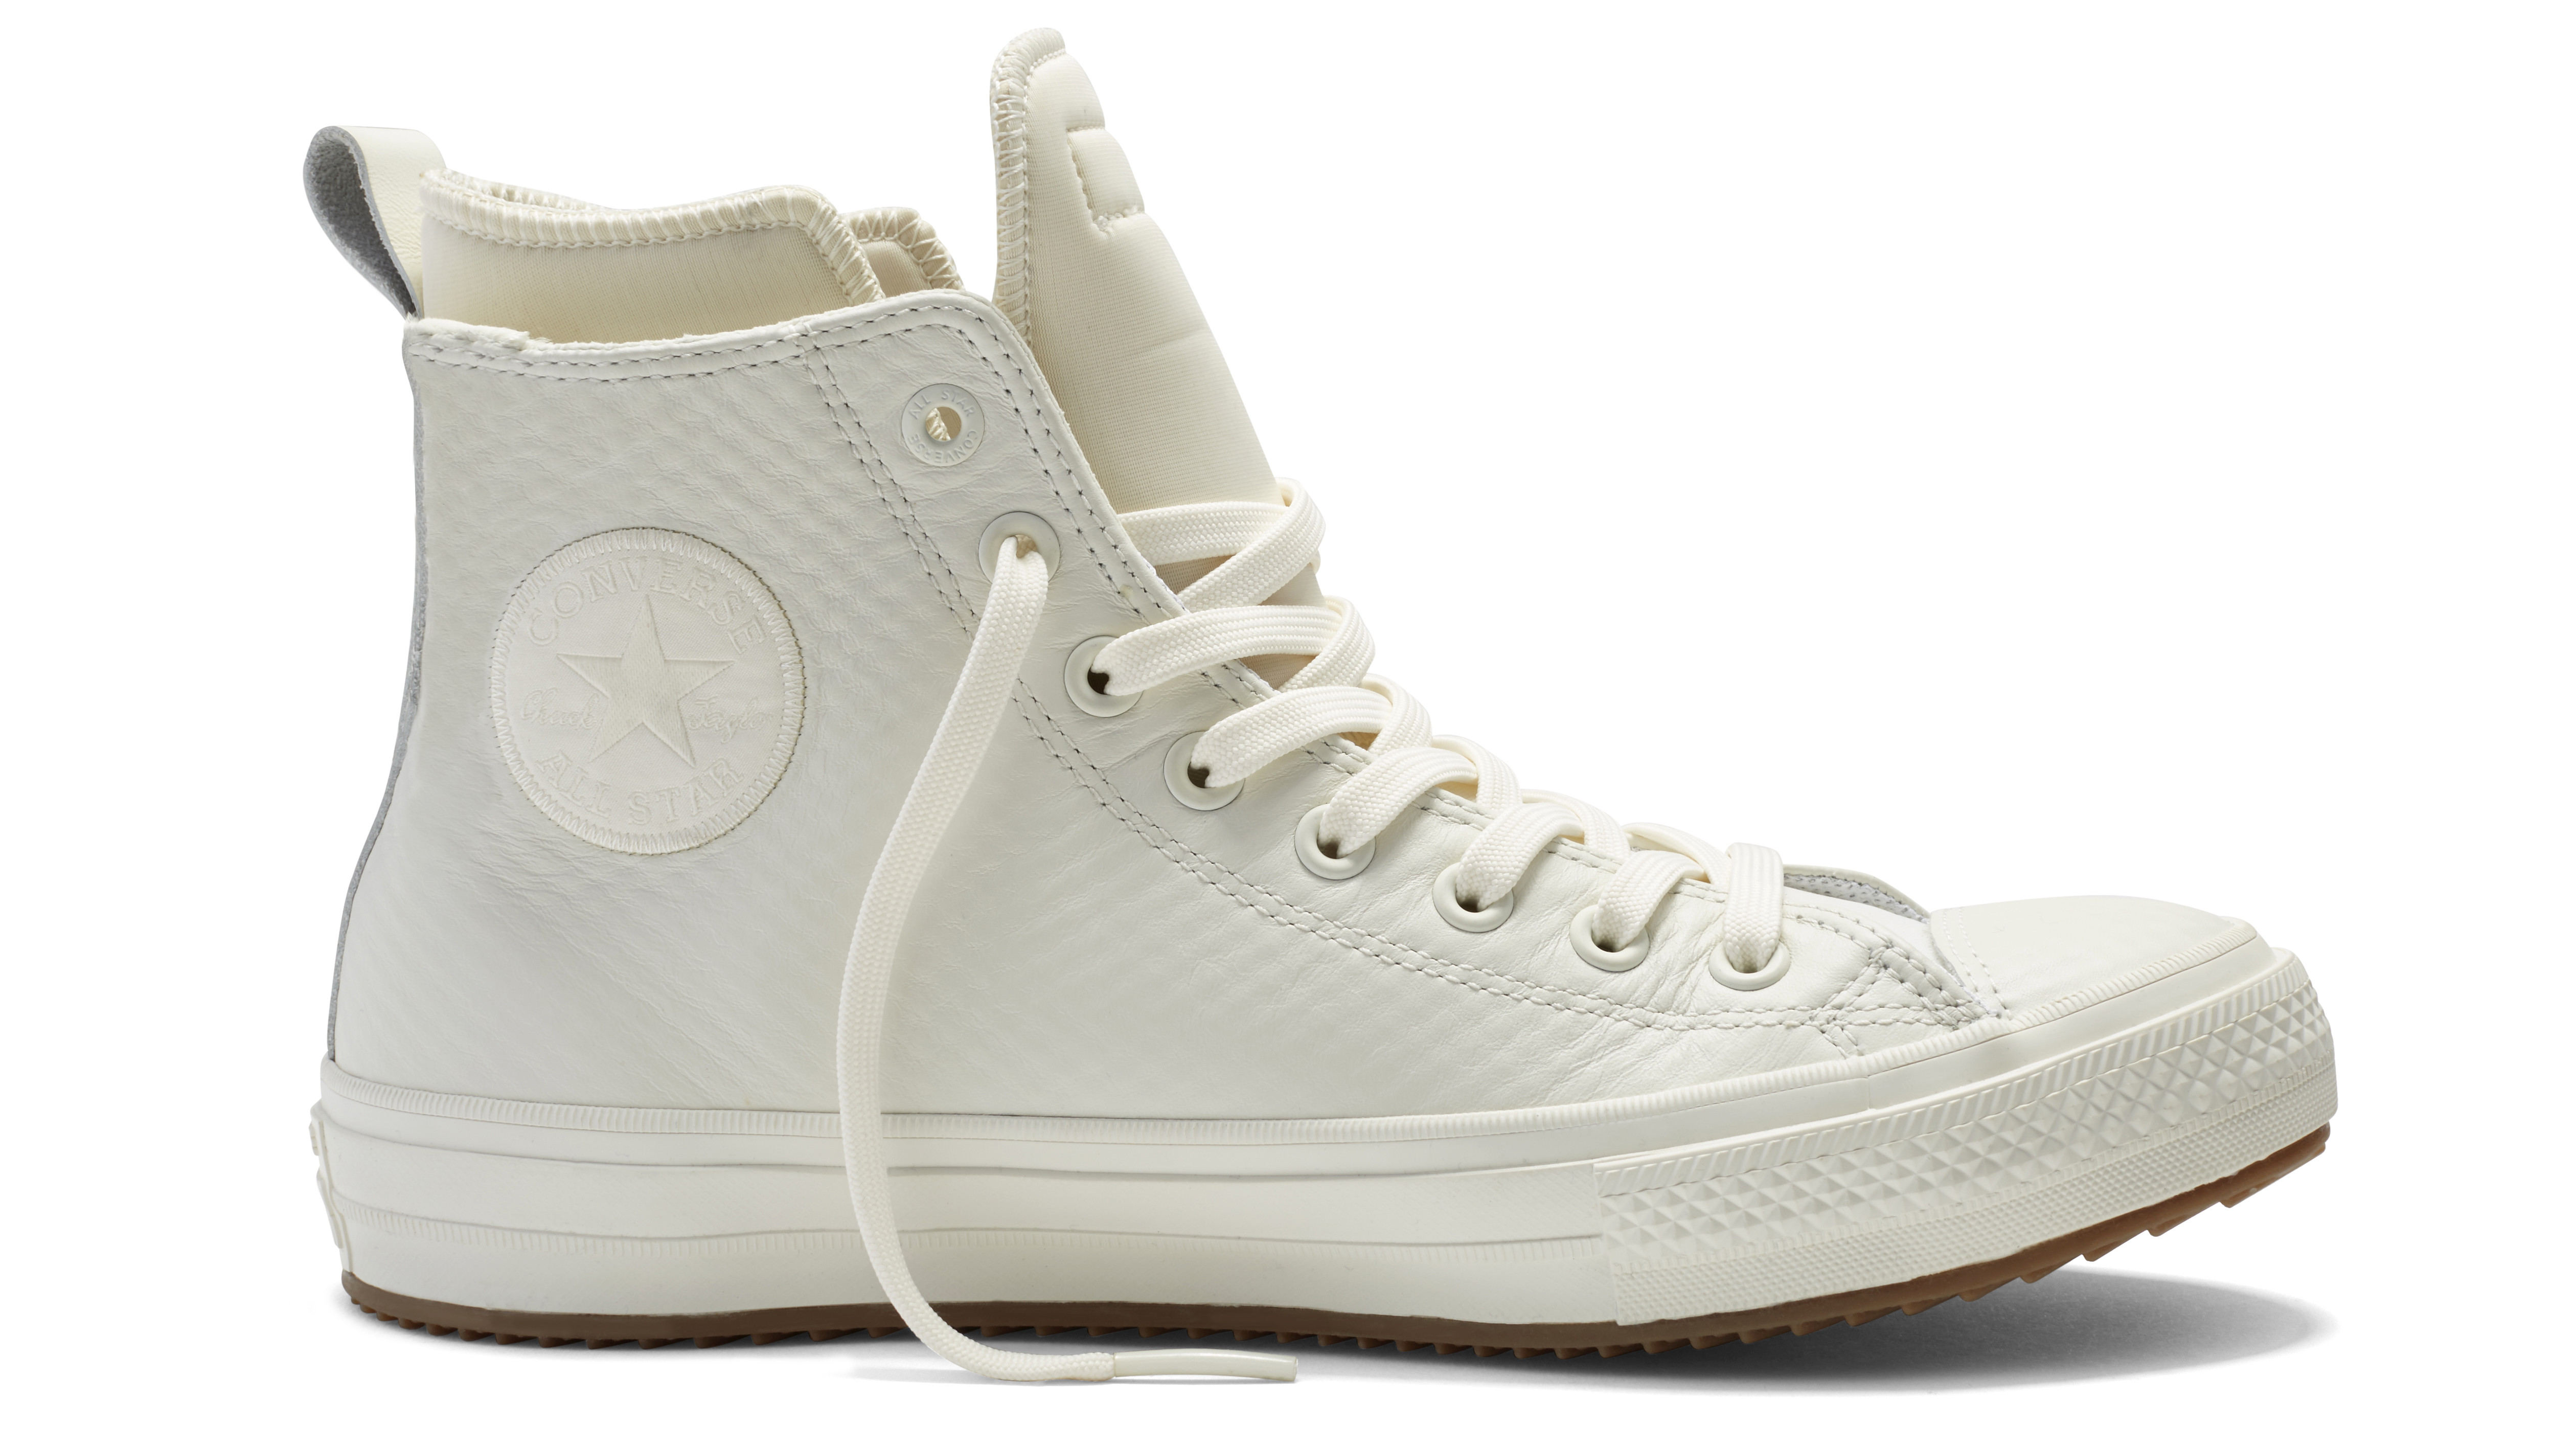 converse chuck taylor 2 water resistant